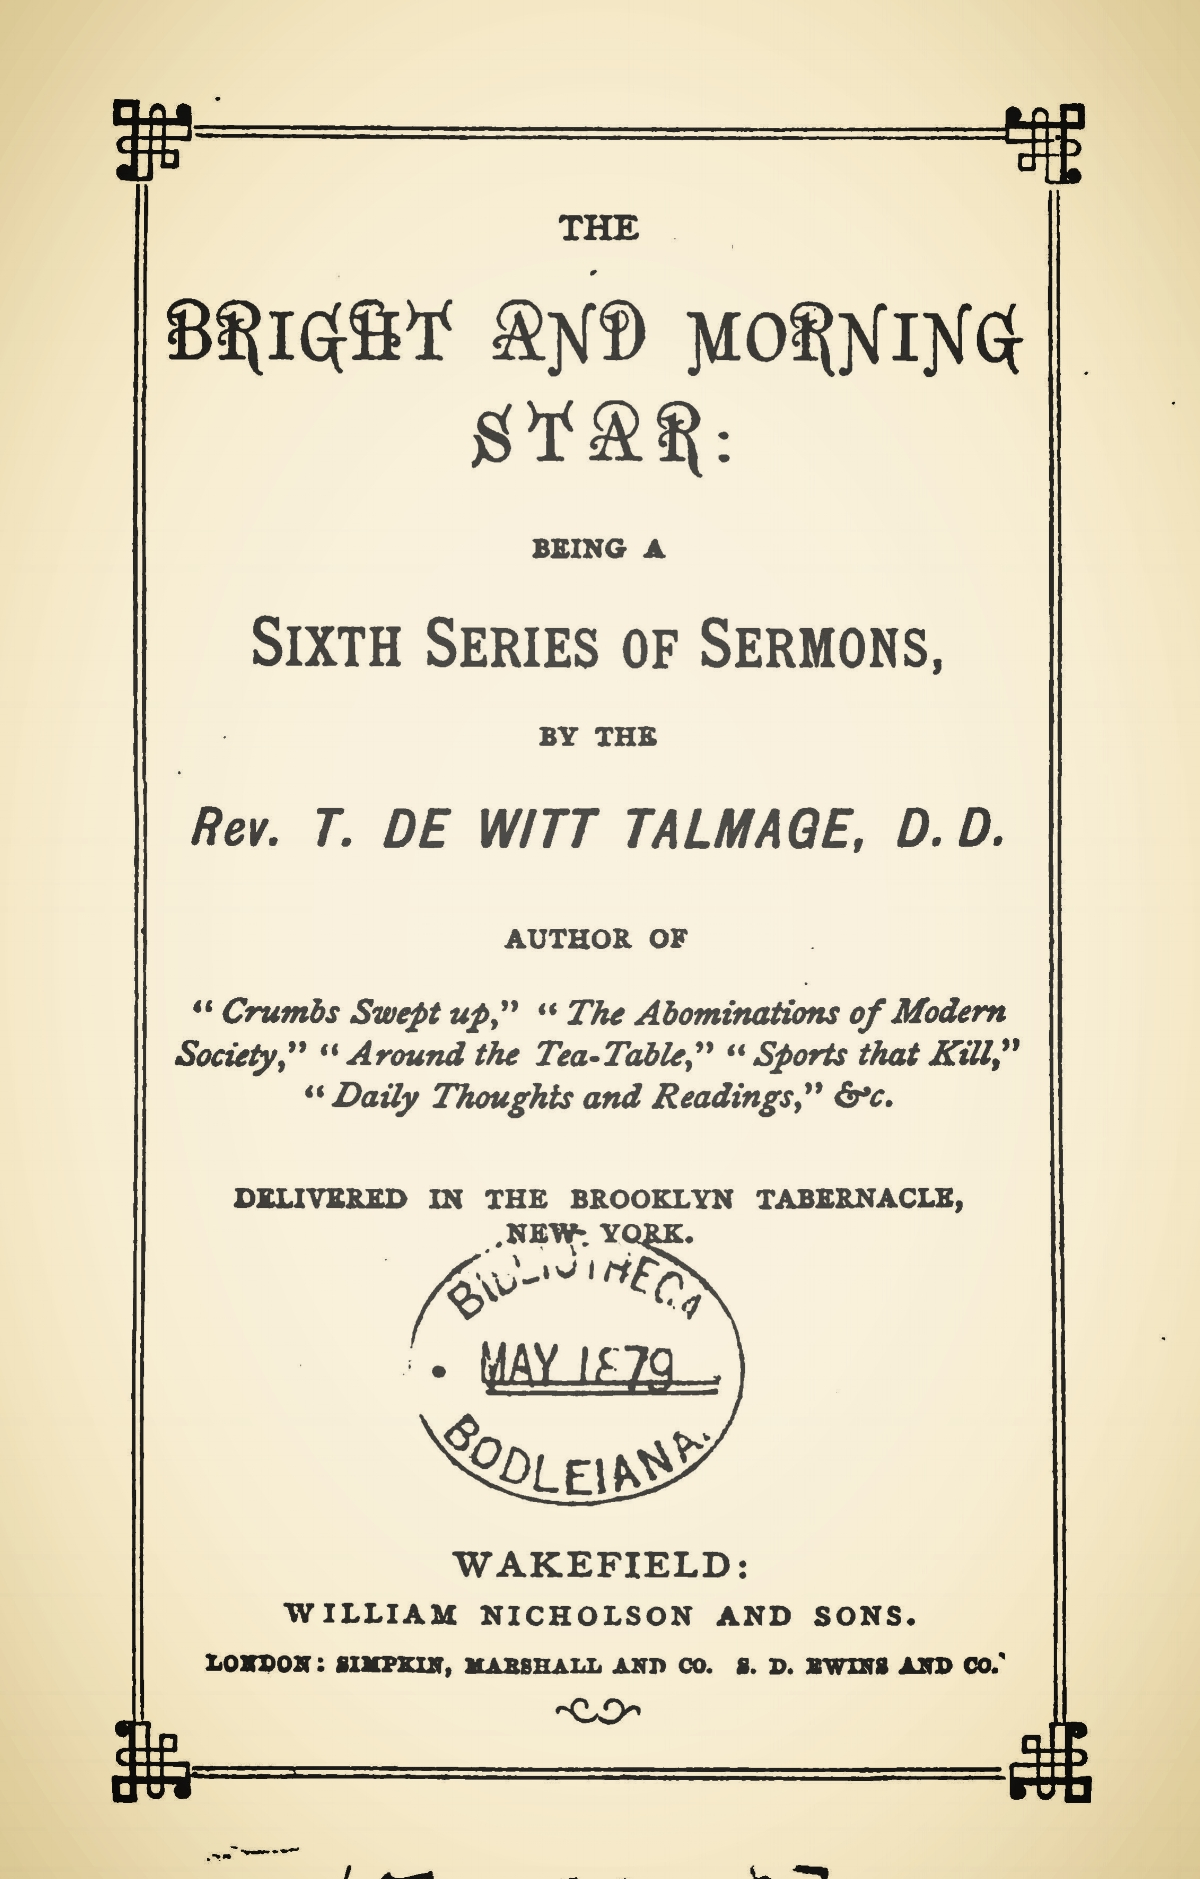 Talmage, Thomas De Witt, The Bright and Morning Star Title Page.jpg